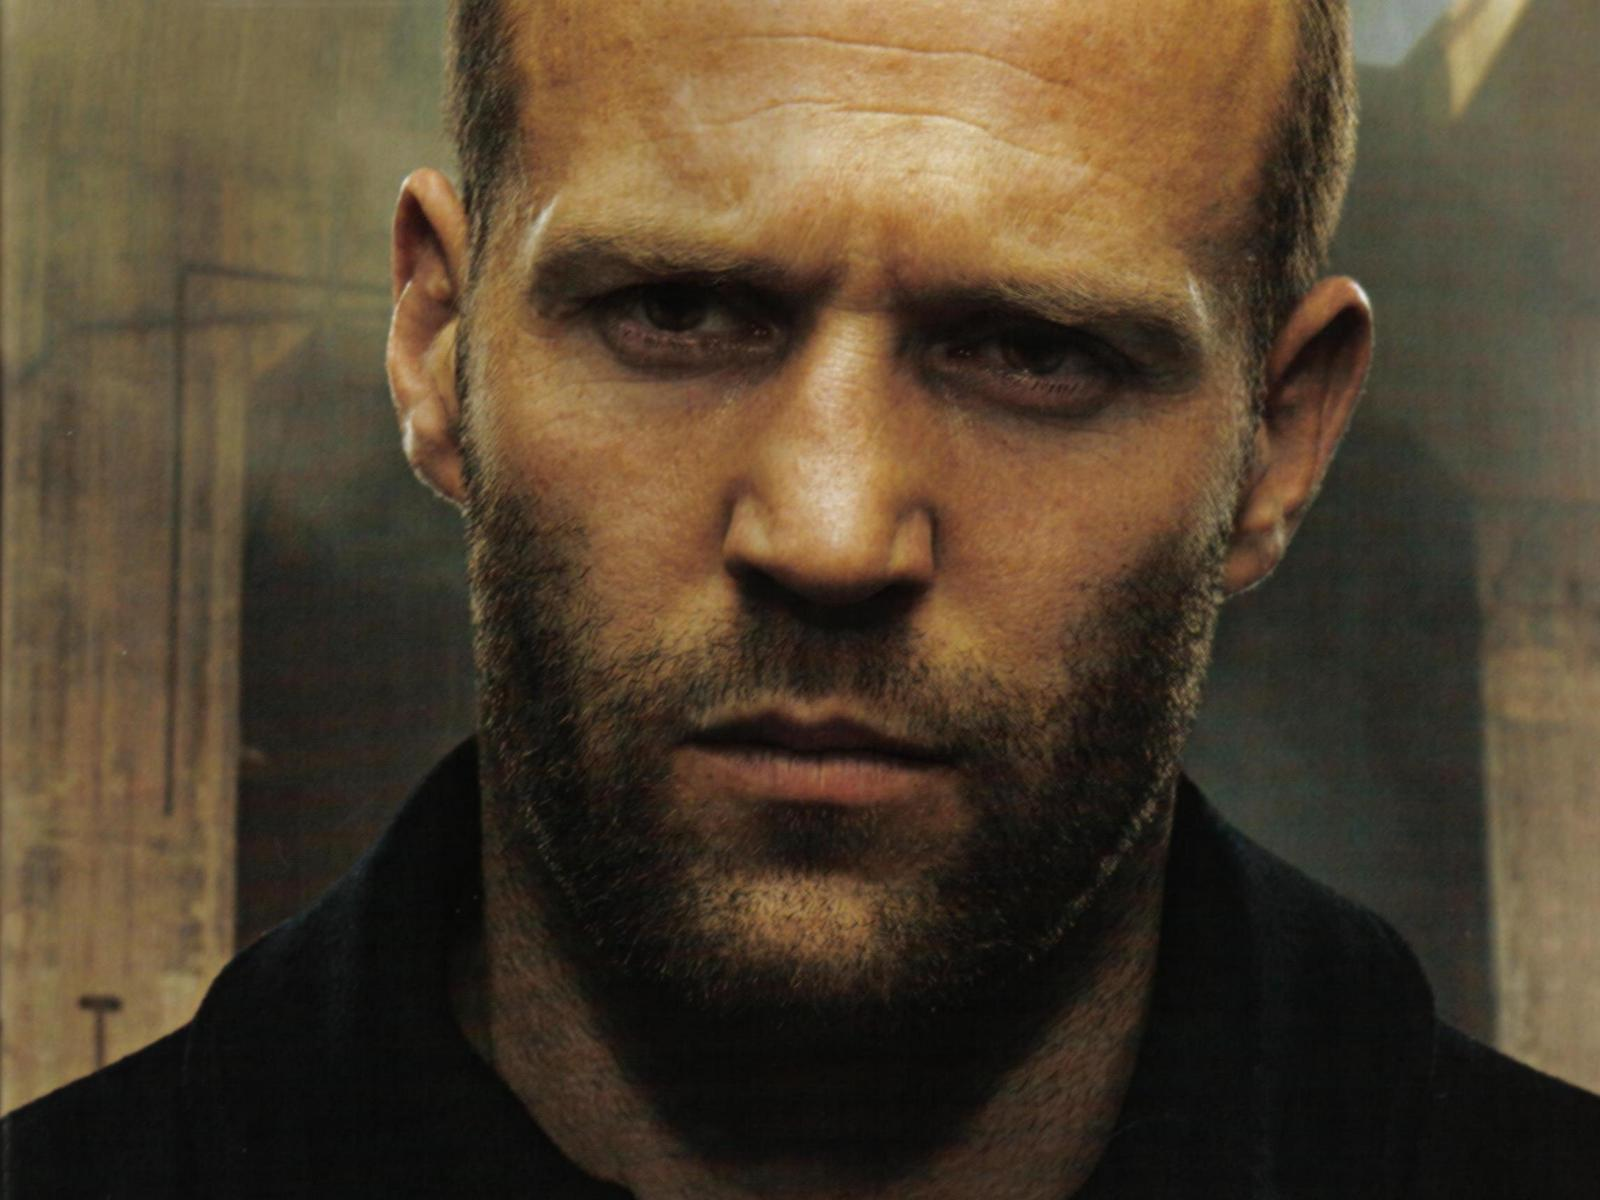 Jason Statham hd wallpapers ›› Page 0 | ForWallpapers.com